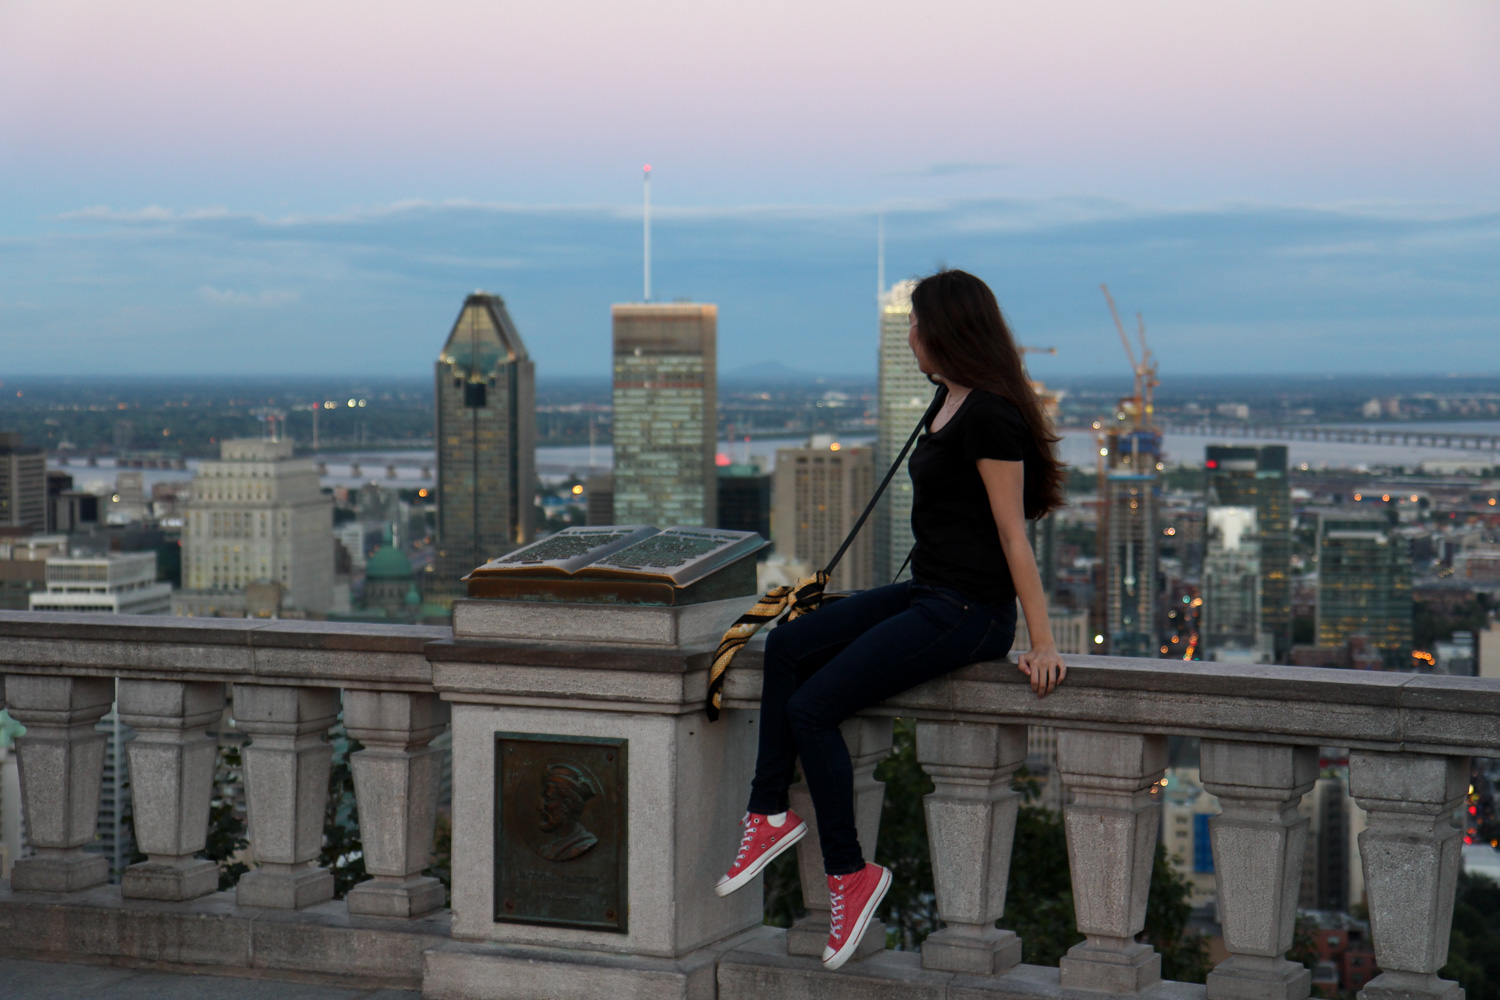 montreal, canada, travel, reise, tipps, fashion blog, sighseeing, sehenswürdigkeiten, mount royal, outfit, skyline